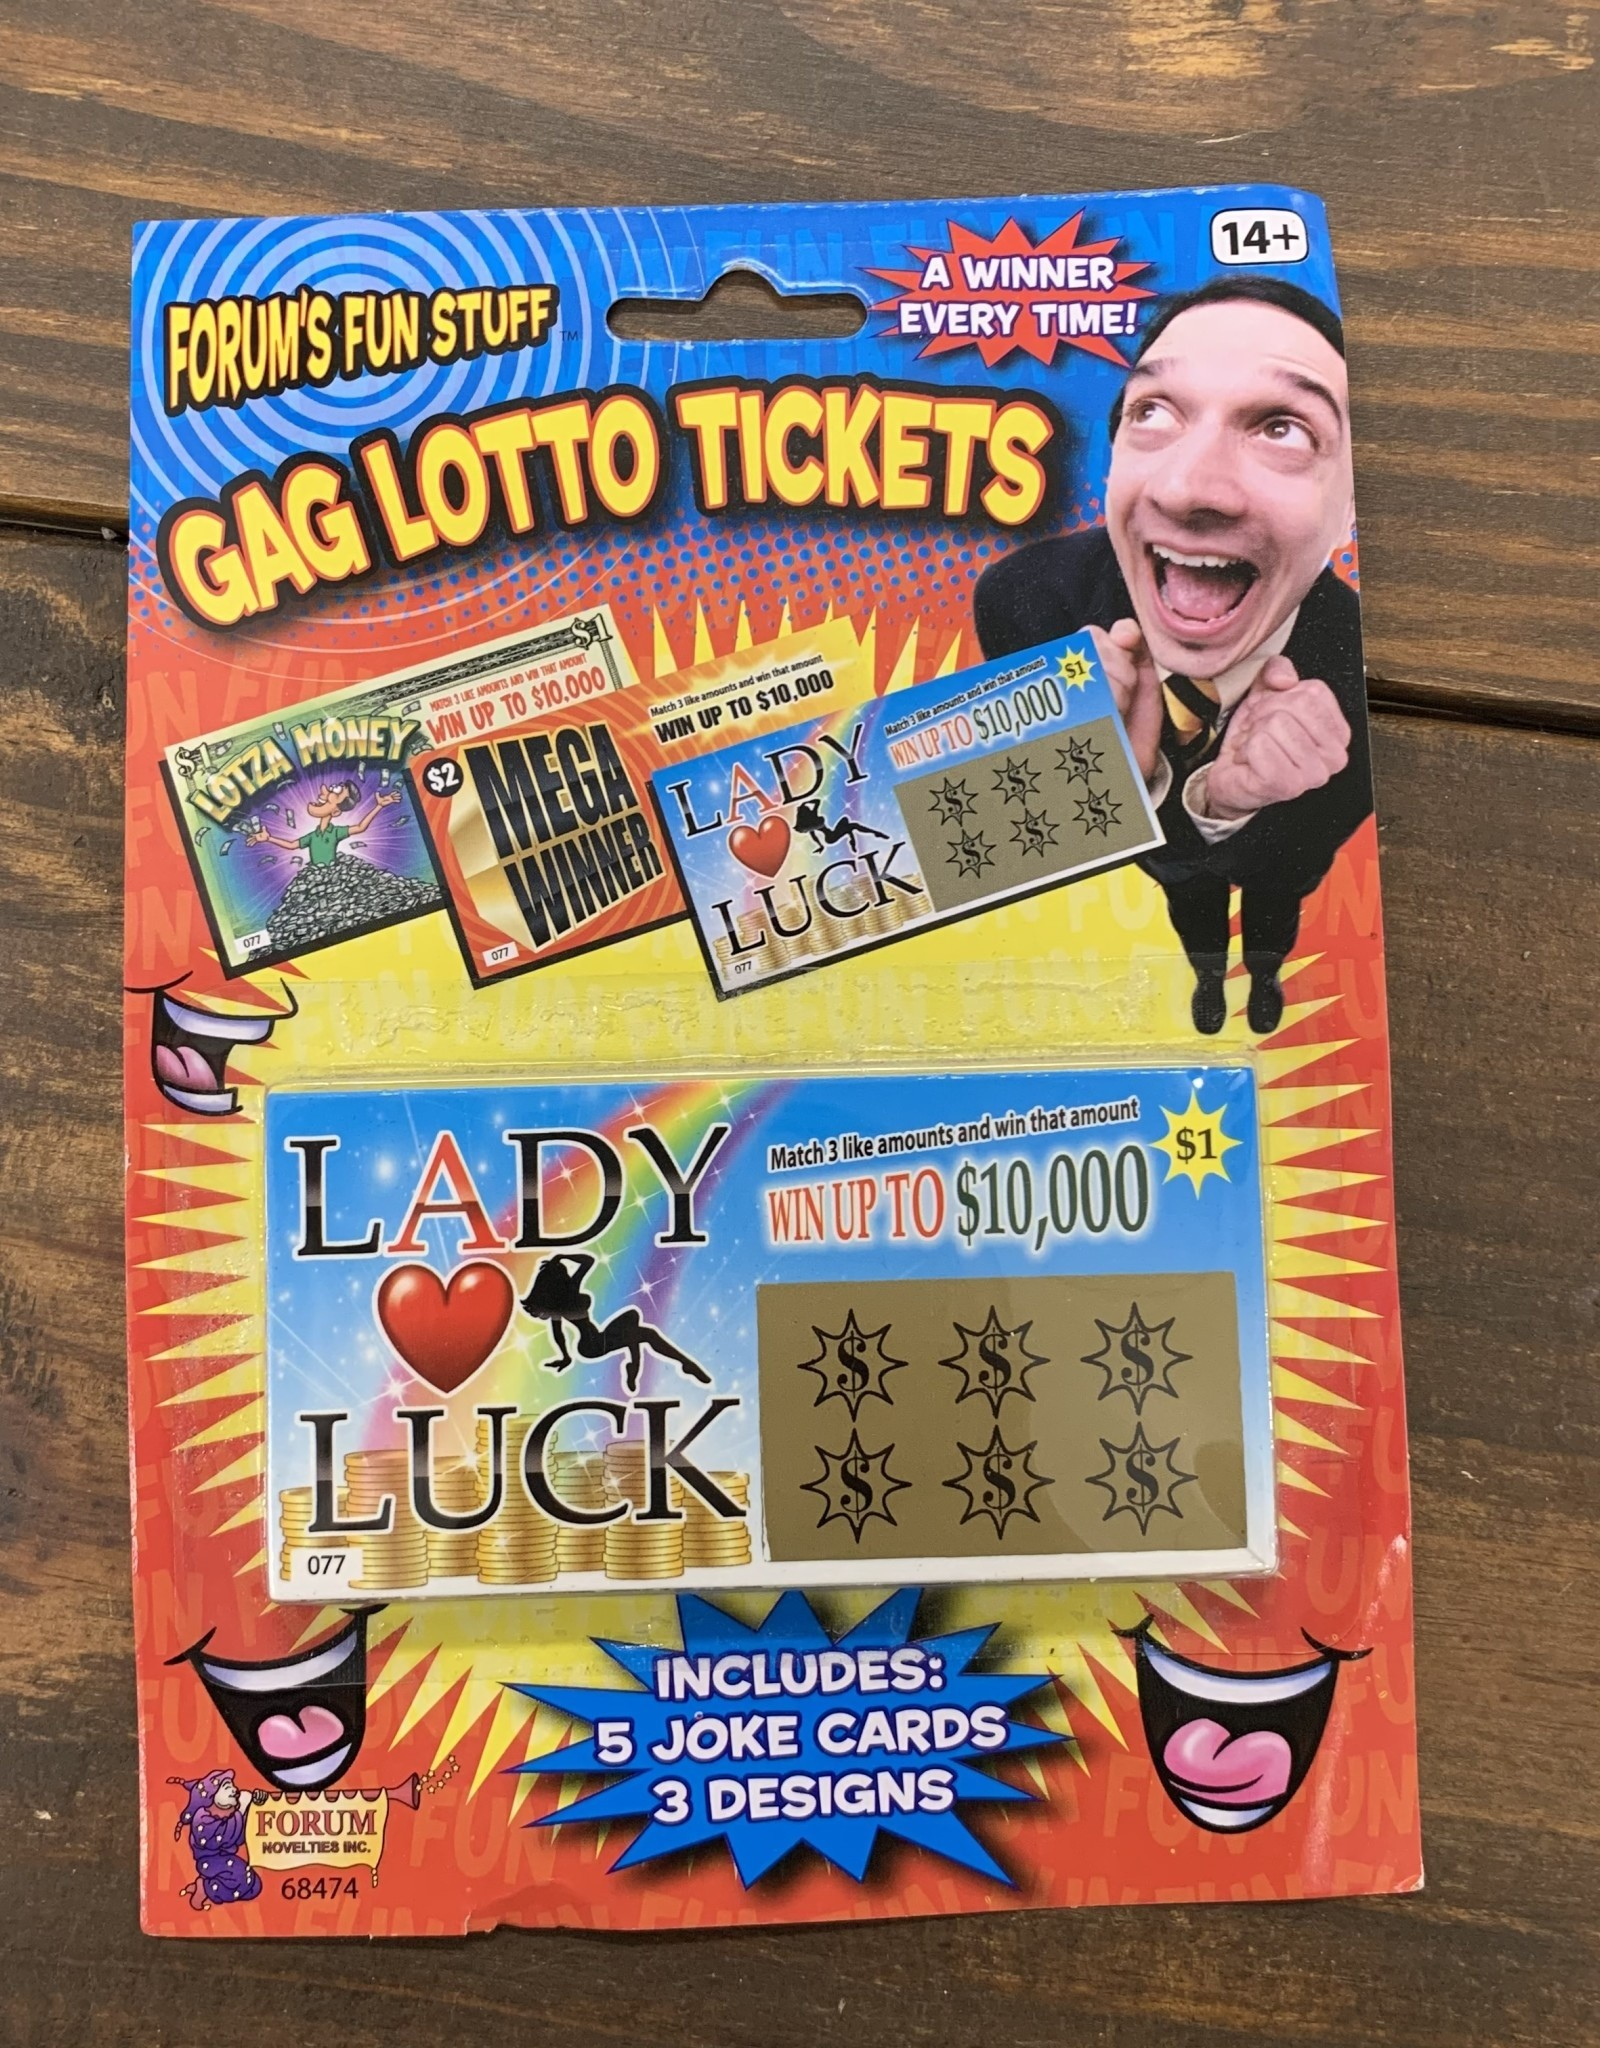 GAG LOTTO TICKETS